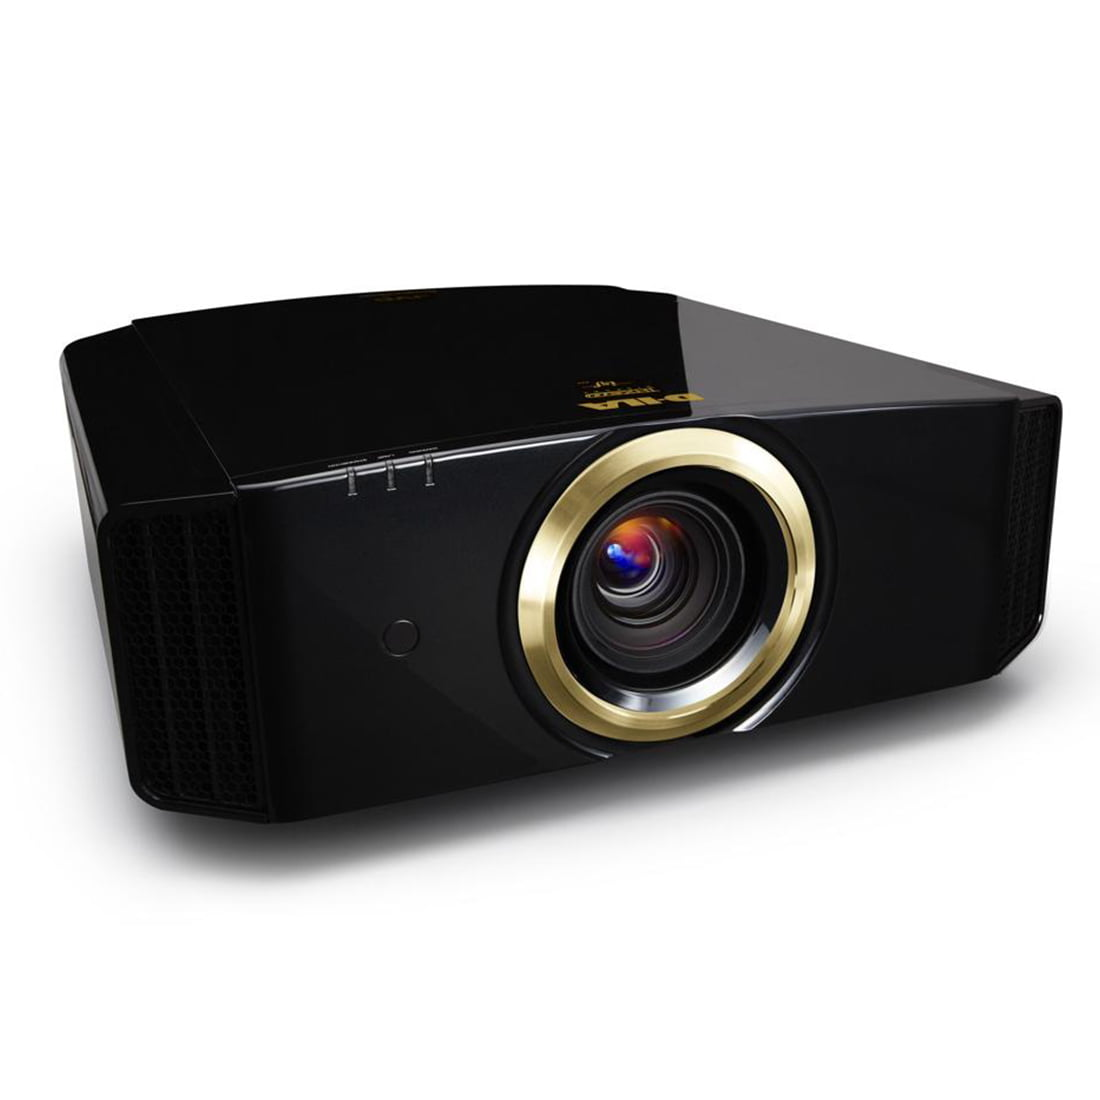 JVC DLA-RS540 Reference Series 4K HDR and Full-HD 3D Projector